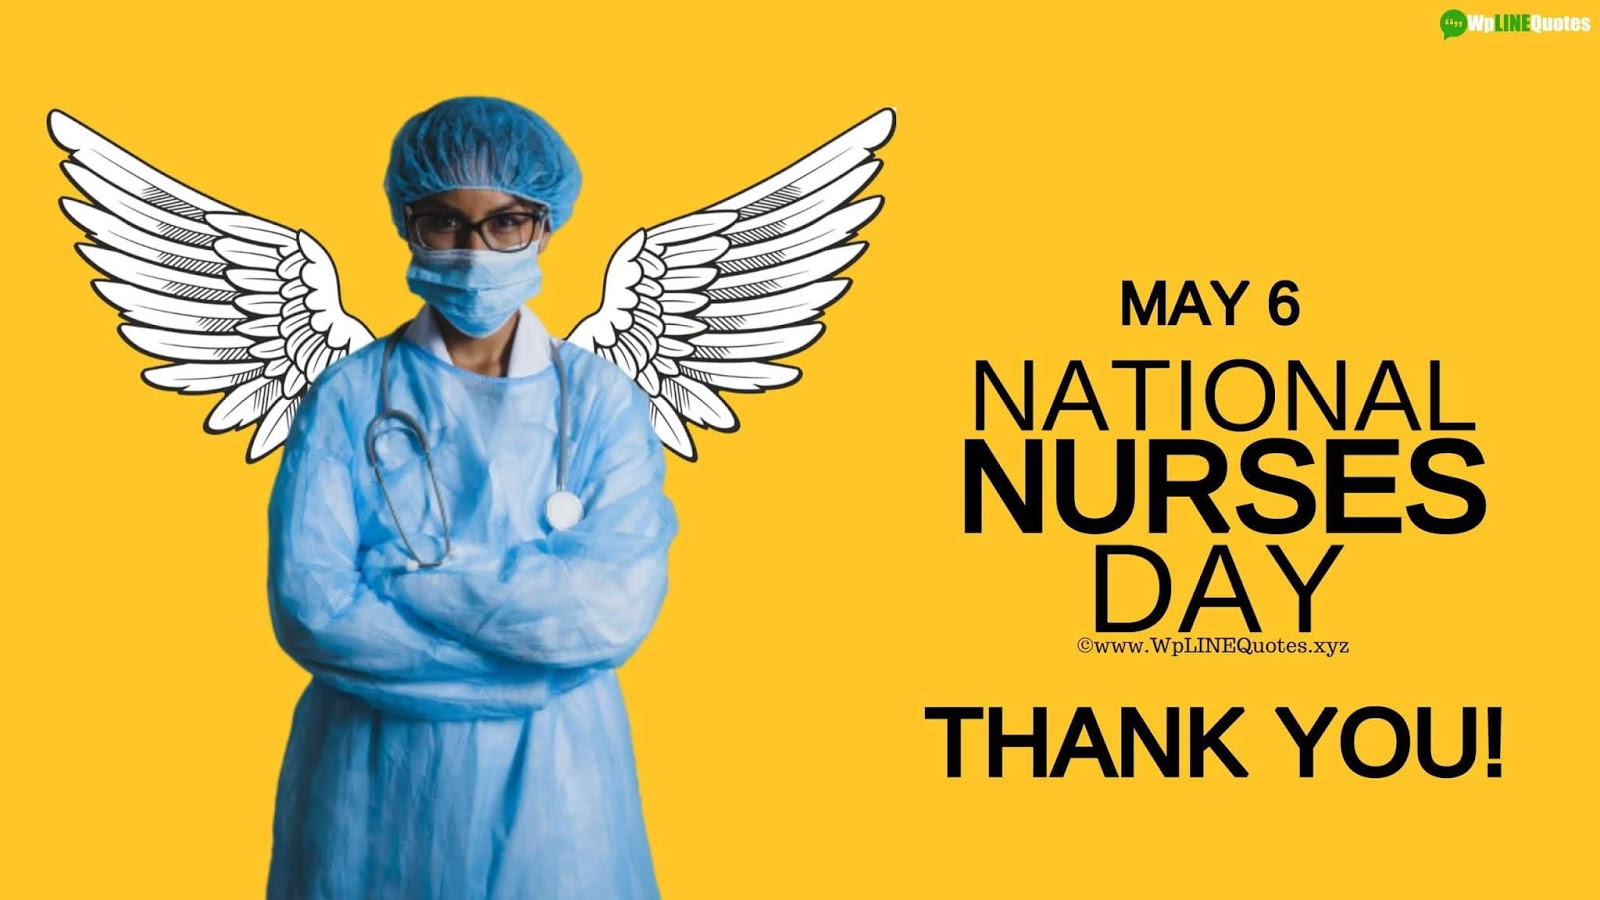 National Nurses Day-Week Quotes, Messages, Facts, Images, Pictures, Photos